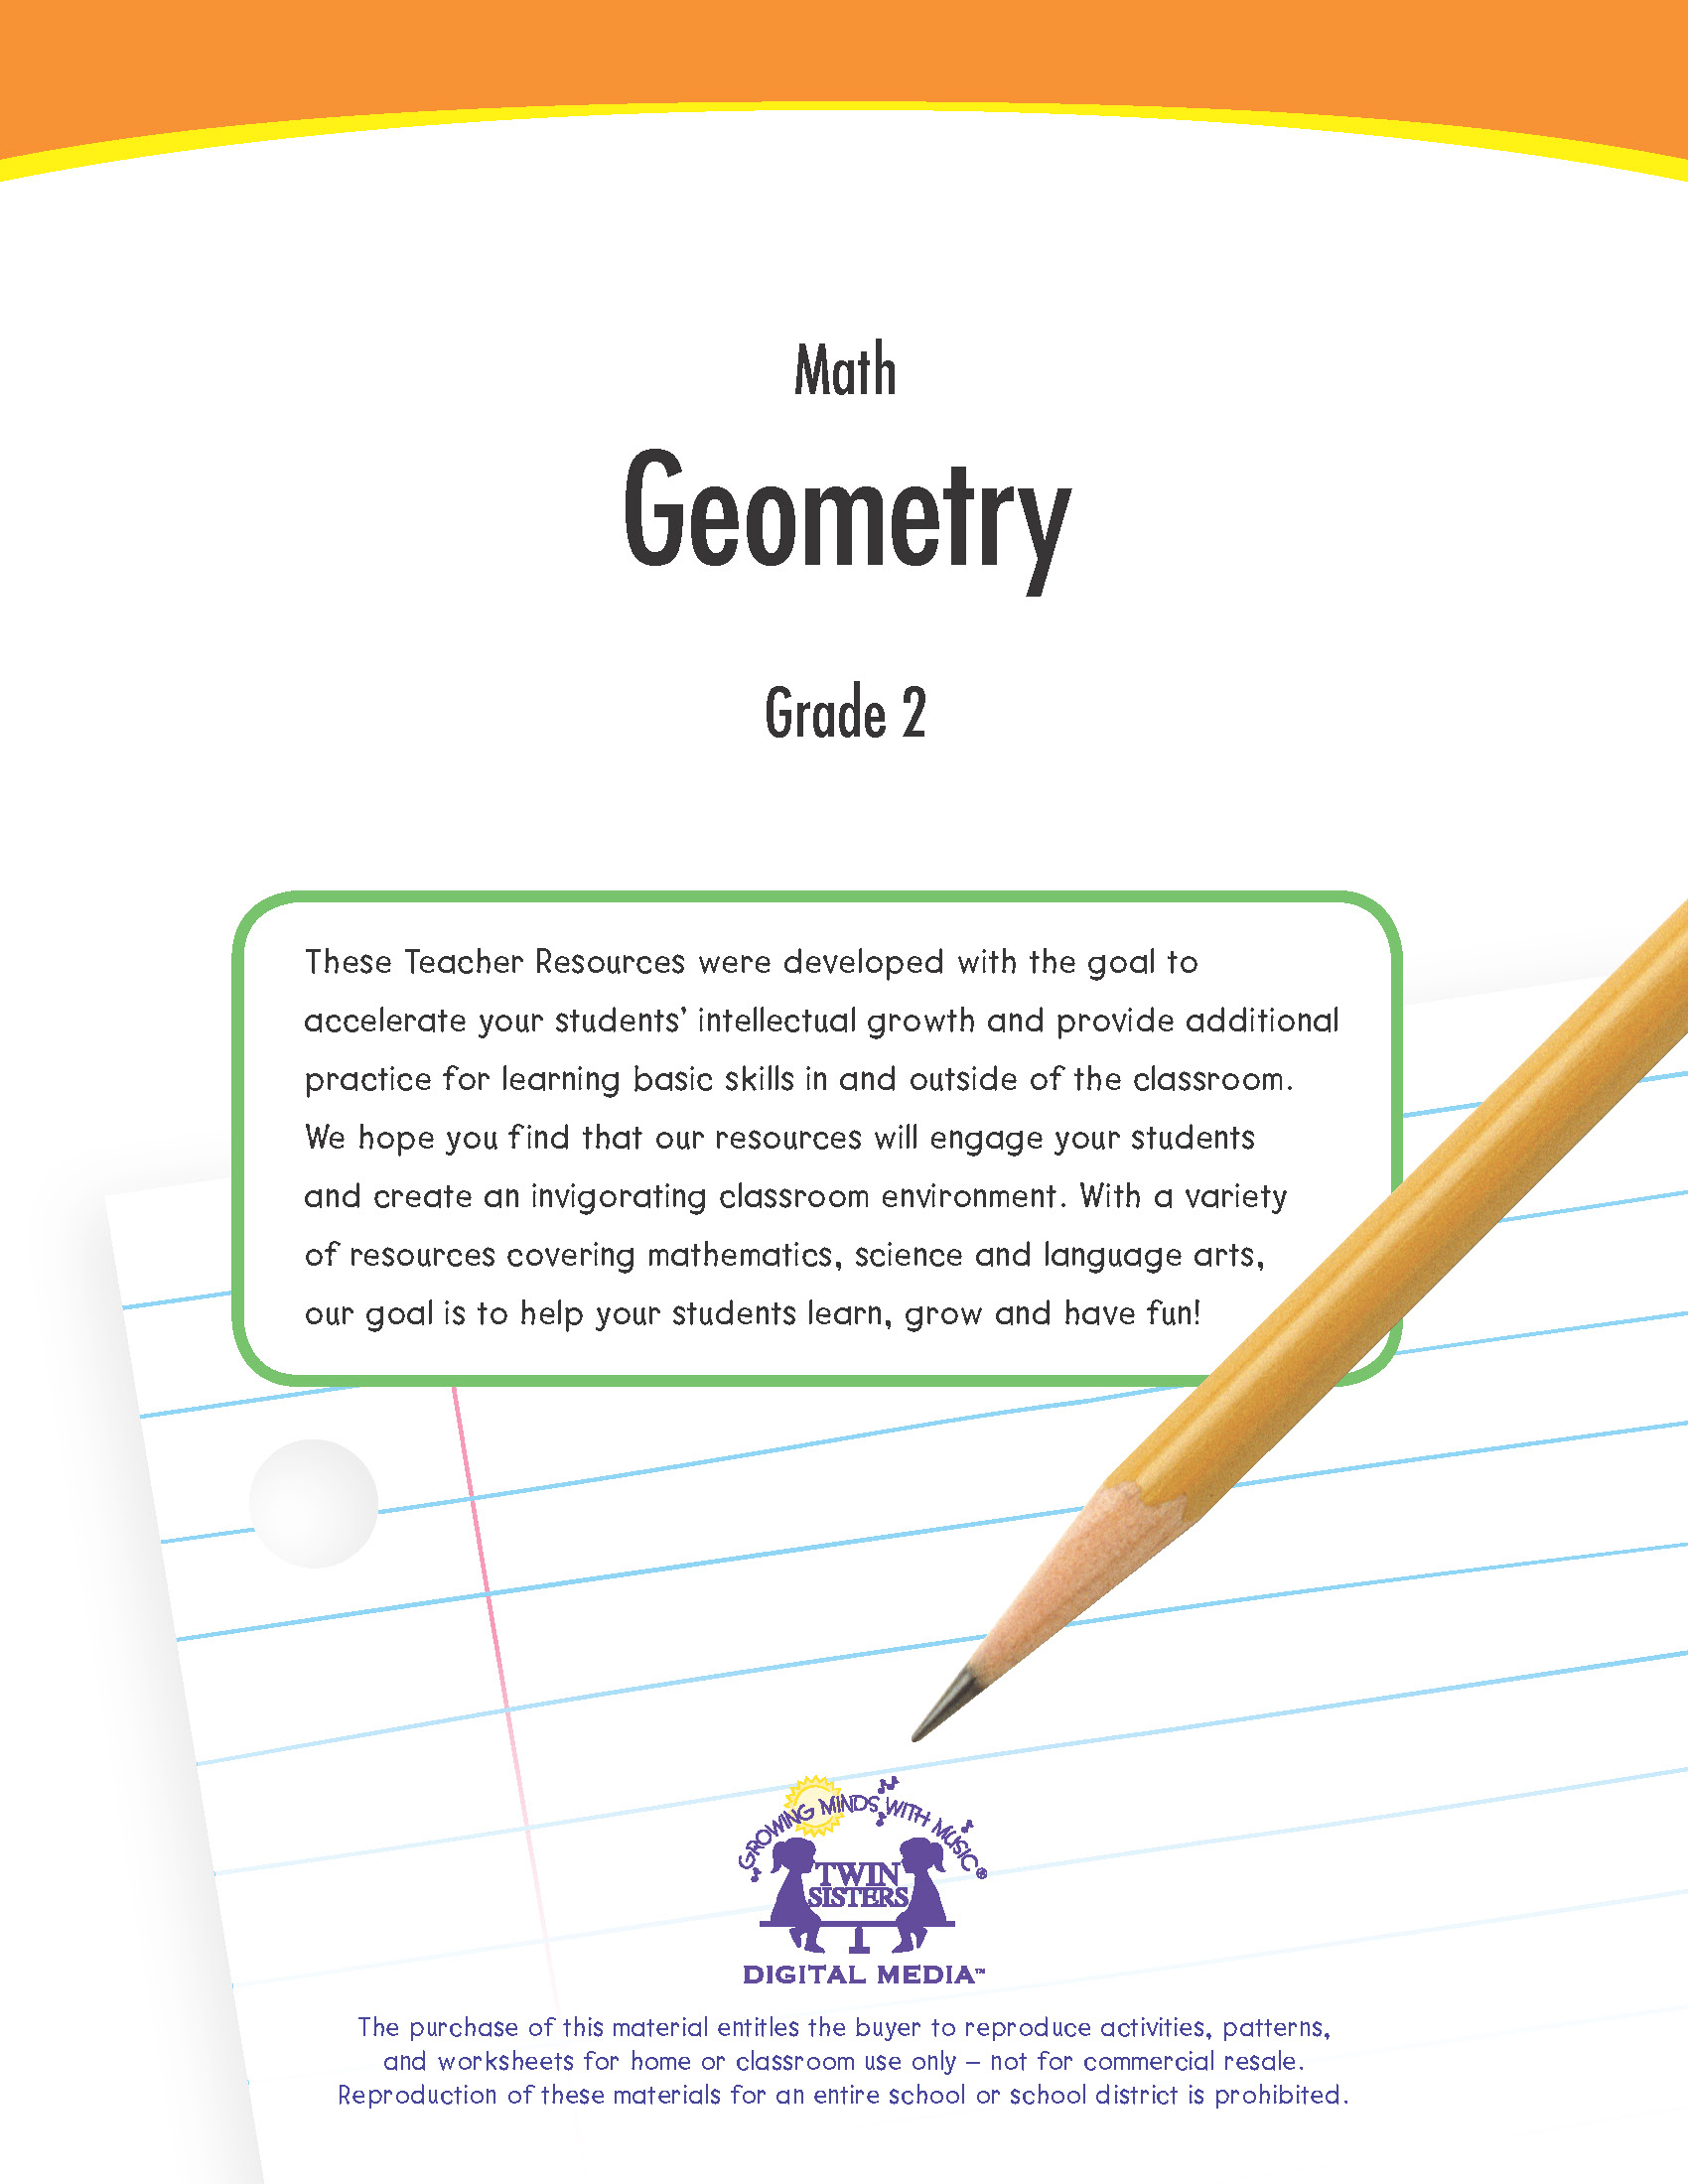 Math Grade 2: Geometry | Twin Sisters